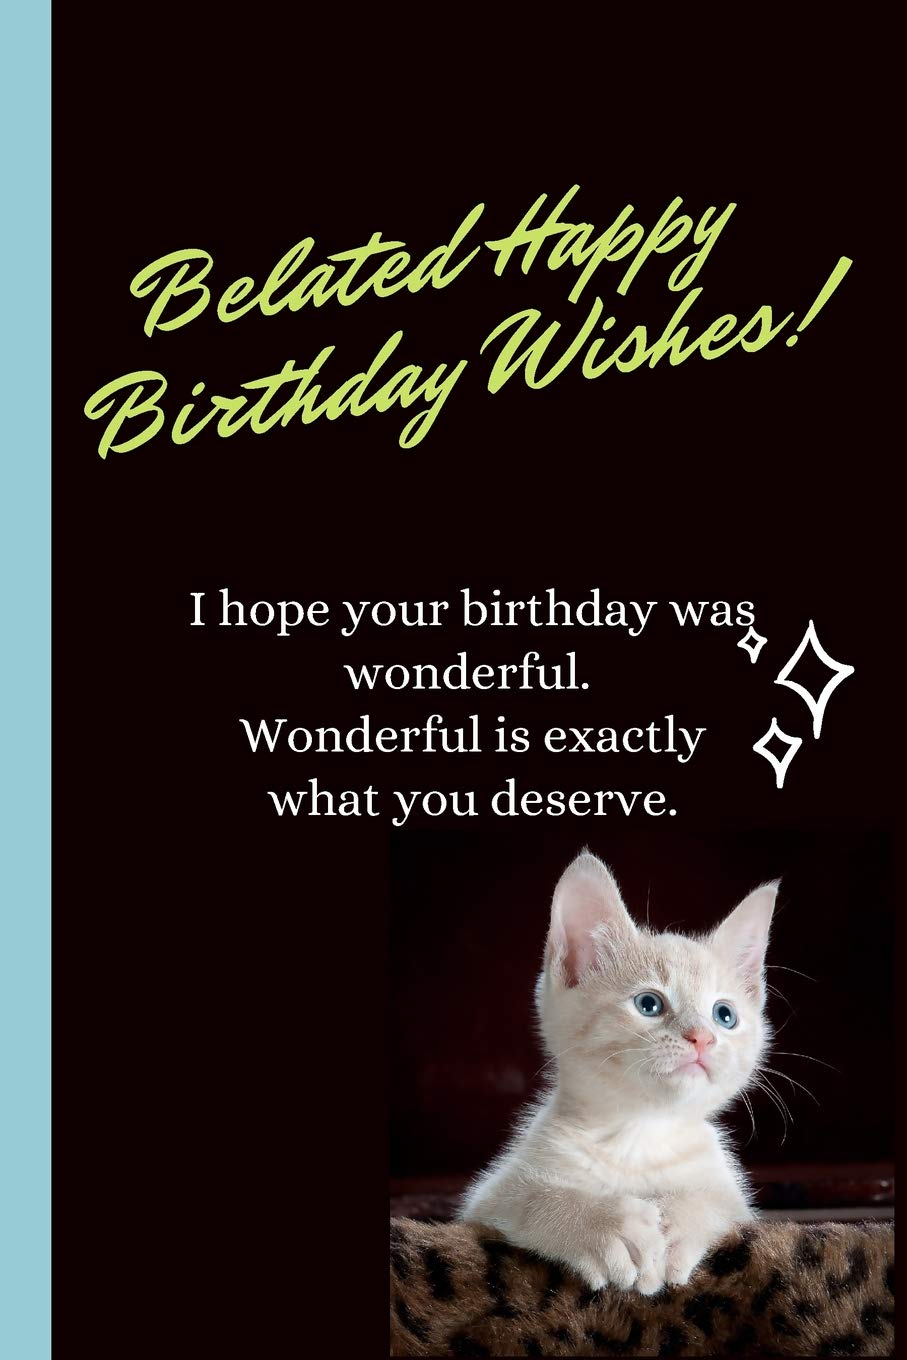 Belated Happy Birthday Wishes Happy Belated Birthday Wishes Gift Blank Lined Journal Messages Greetings Gifts Presents Cards Publishing Gary E Smith 9781070607146 Amazon Com Books